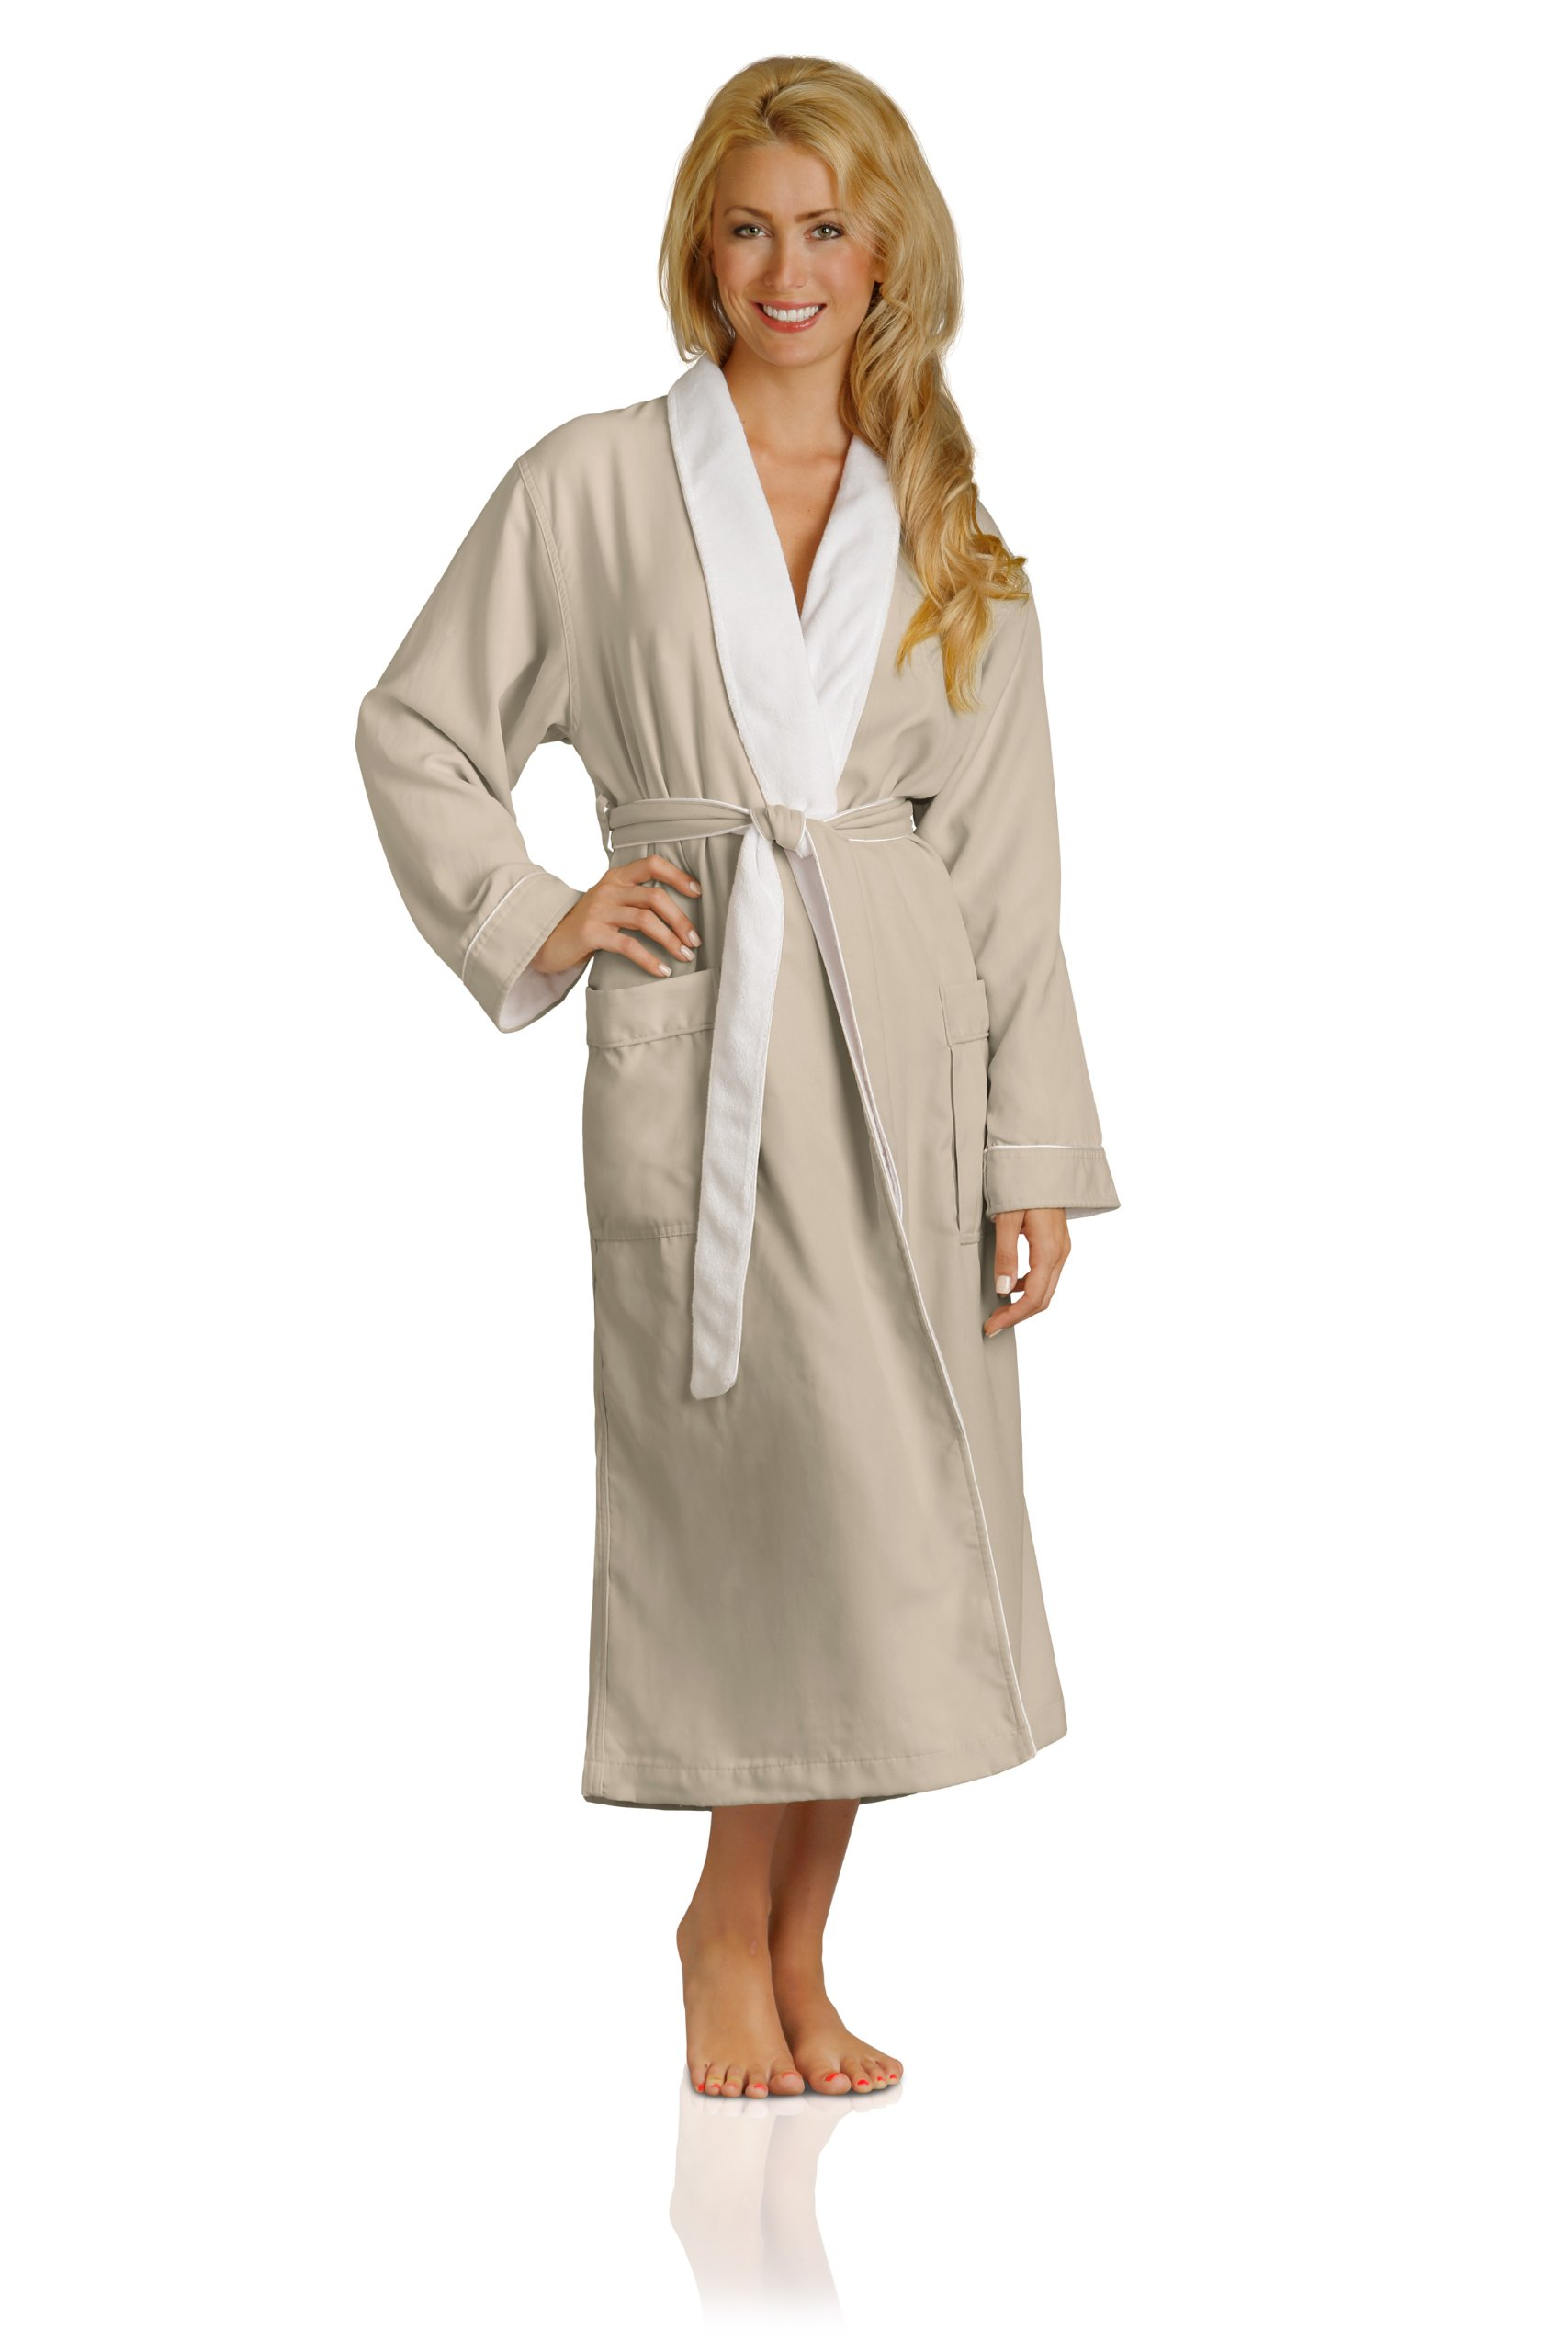 Luxury Spa Robe - Microfiber with Cotton Terry Lining, Seashell, XXX-Large